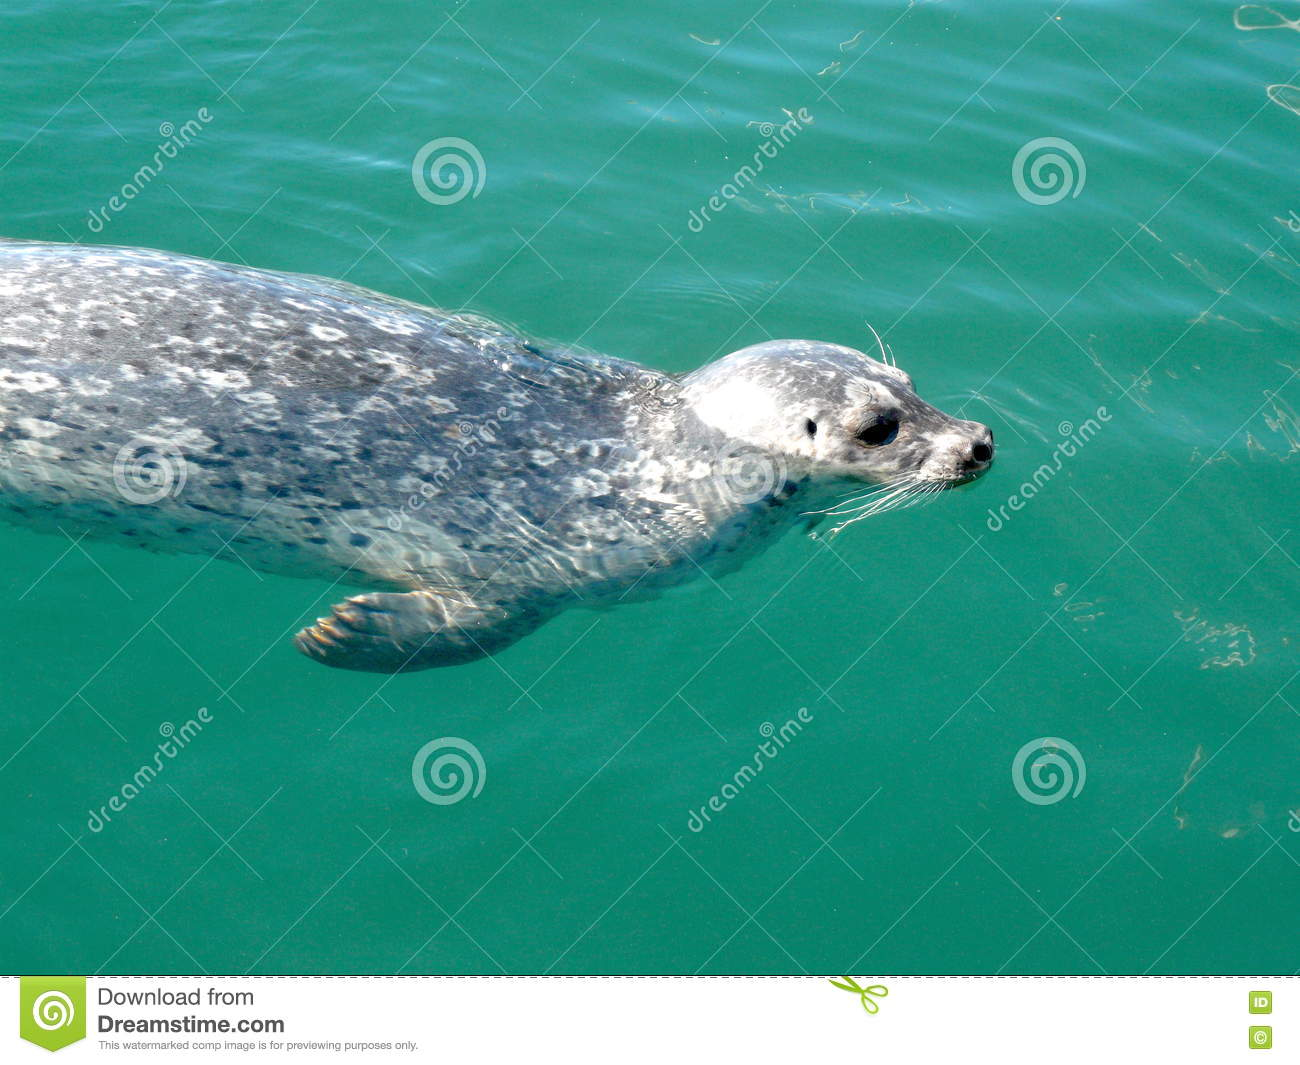 Swimming Seal on seal clip art, seal in the sea, seal animals, seal on land,